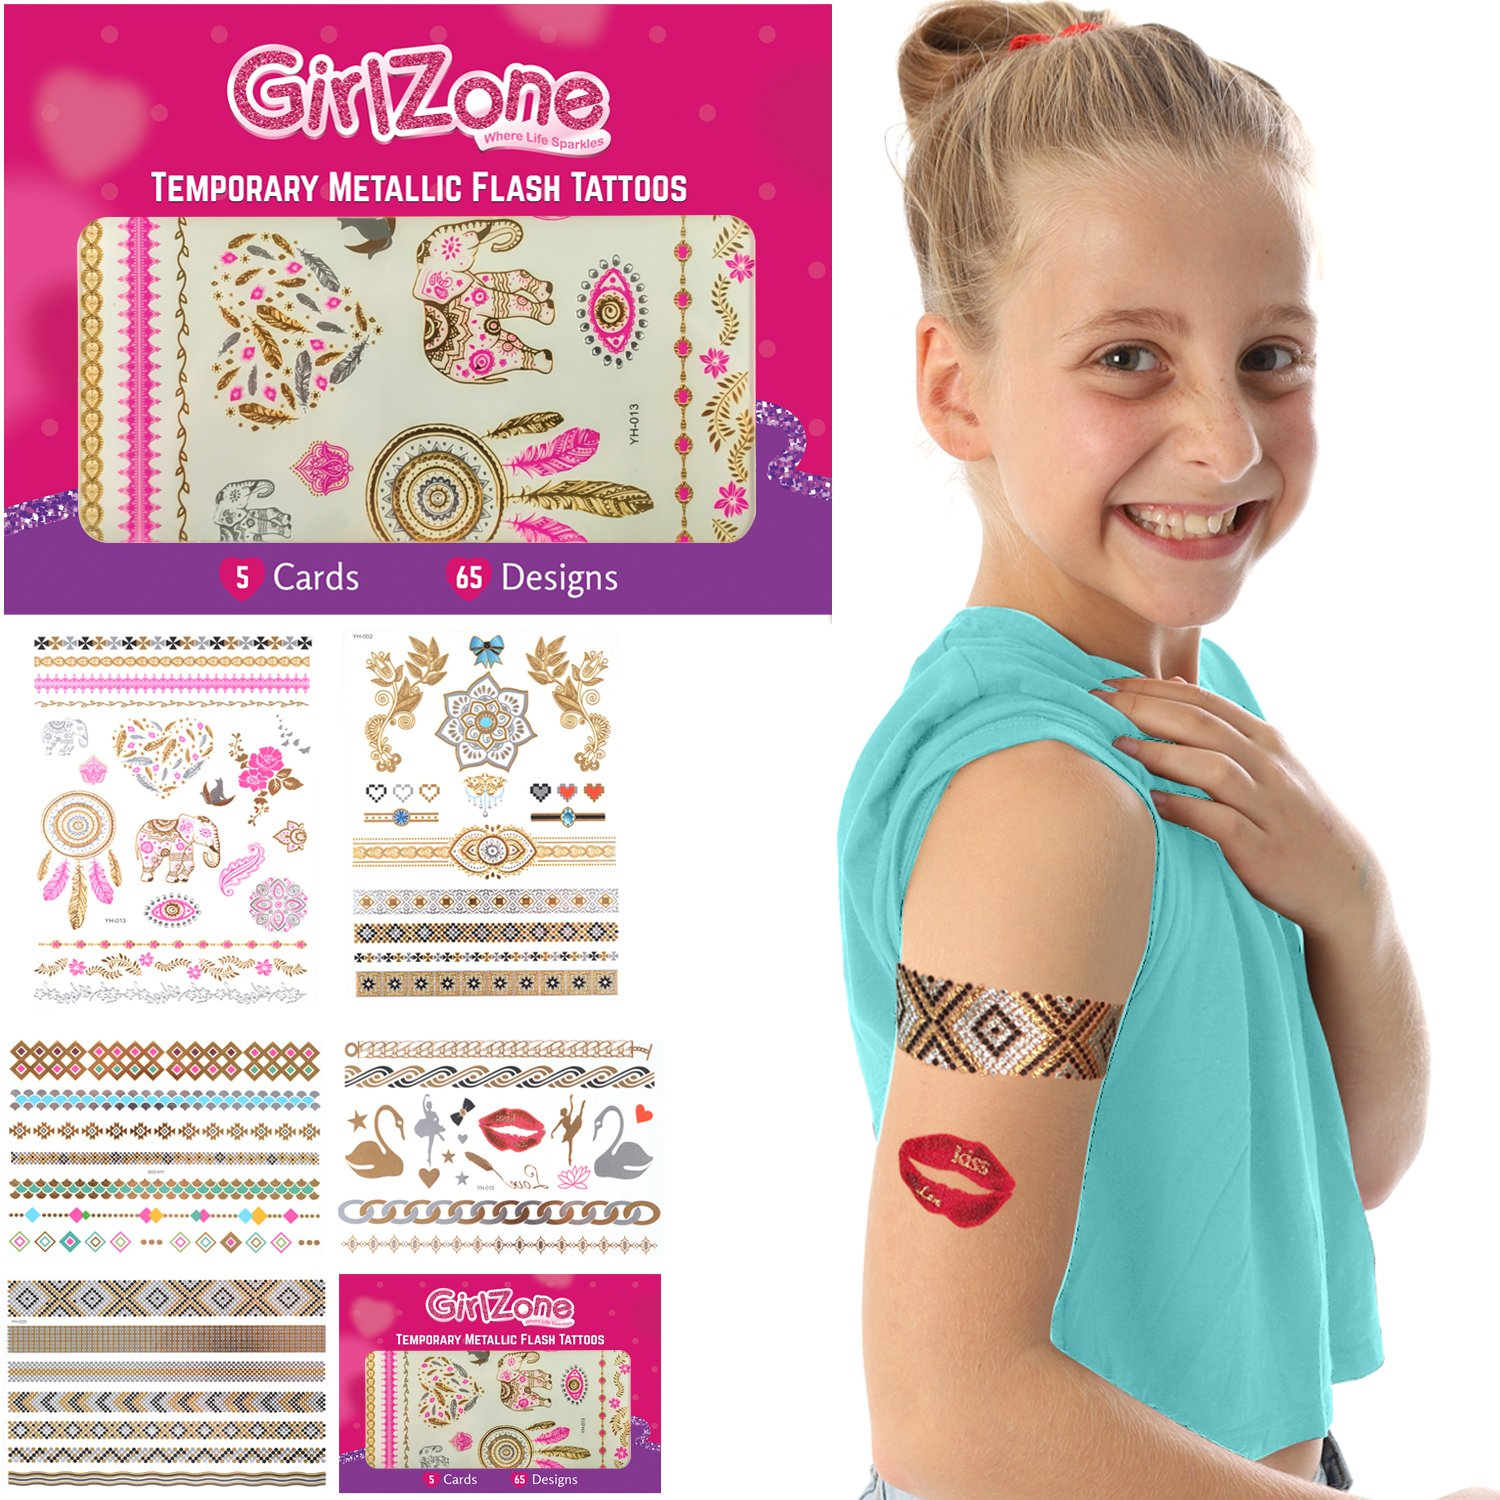 GirlZone Gifts Girls: Flash Tattoos Girls - Metallic, Temporary Tattoos - 5 Card Pack - 65 Designs.. Makes A Great Birthday Present Gift Girls Aged 4 5 6 7 8 9 10 Years Old